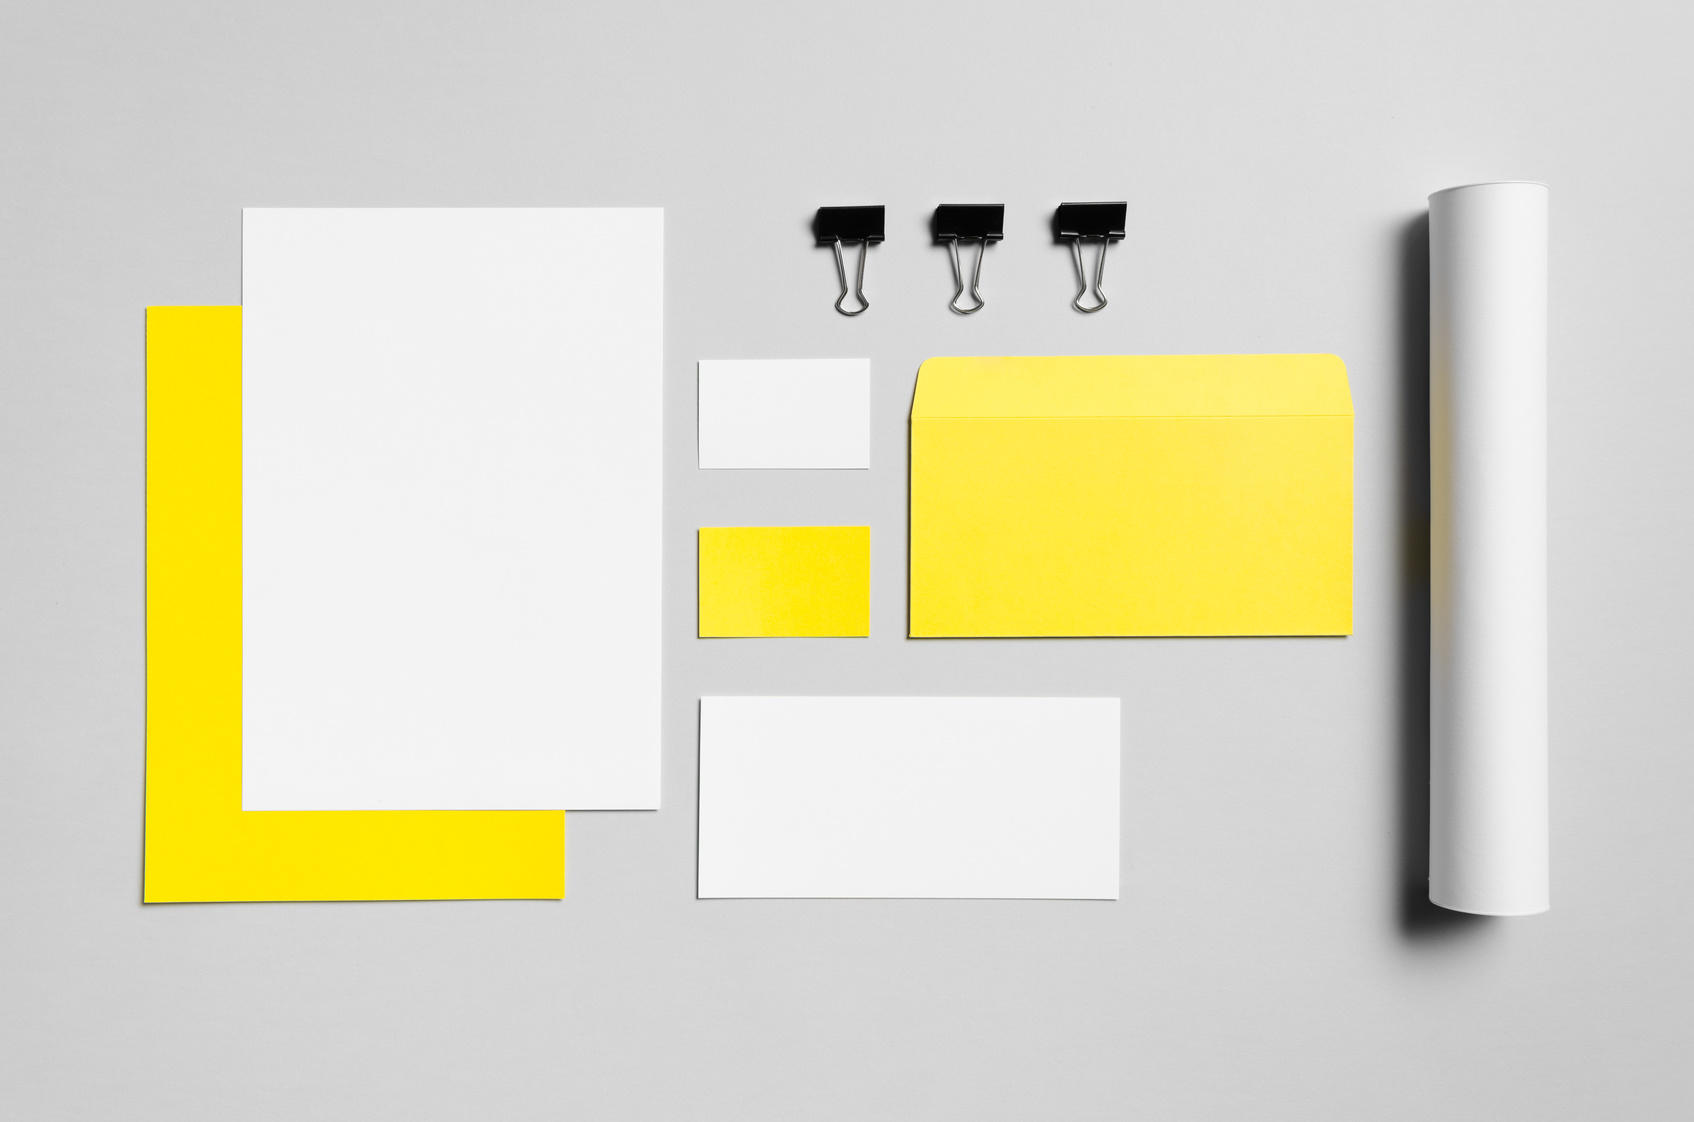 Branding / Stationery Mock-Up - Yellow & White - Letterhead (A4), DL Envelope, Compliments Slip (99x210mm), Business Cards (85x55mm), Mailing Tube